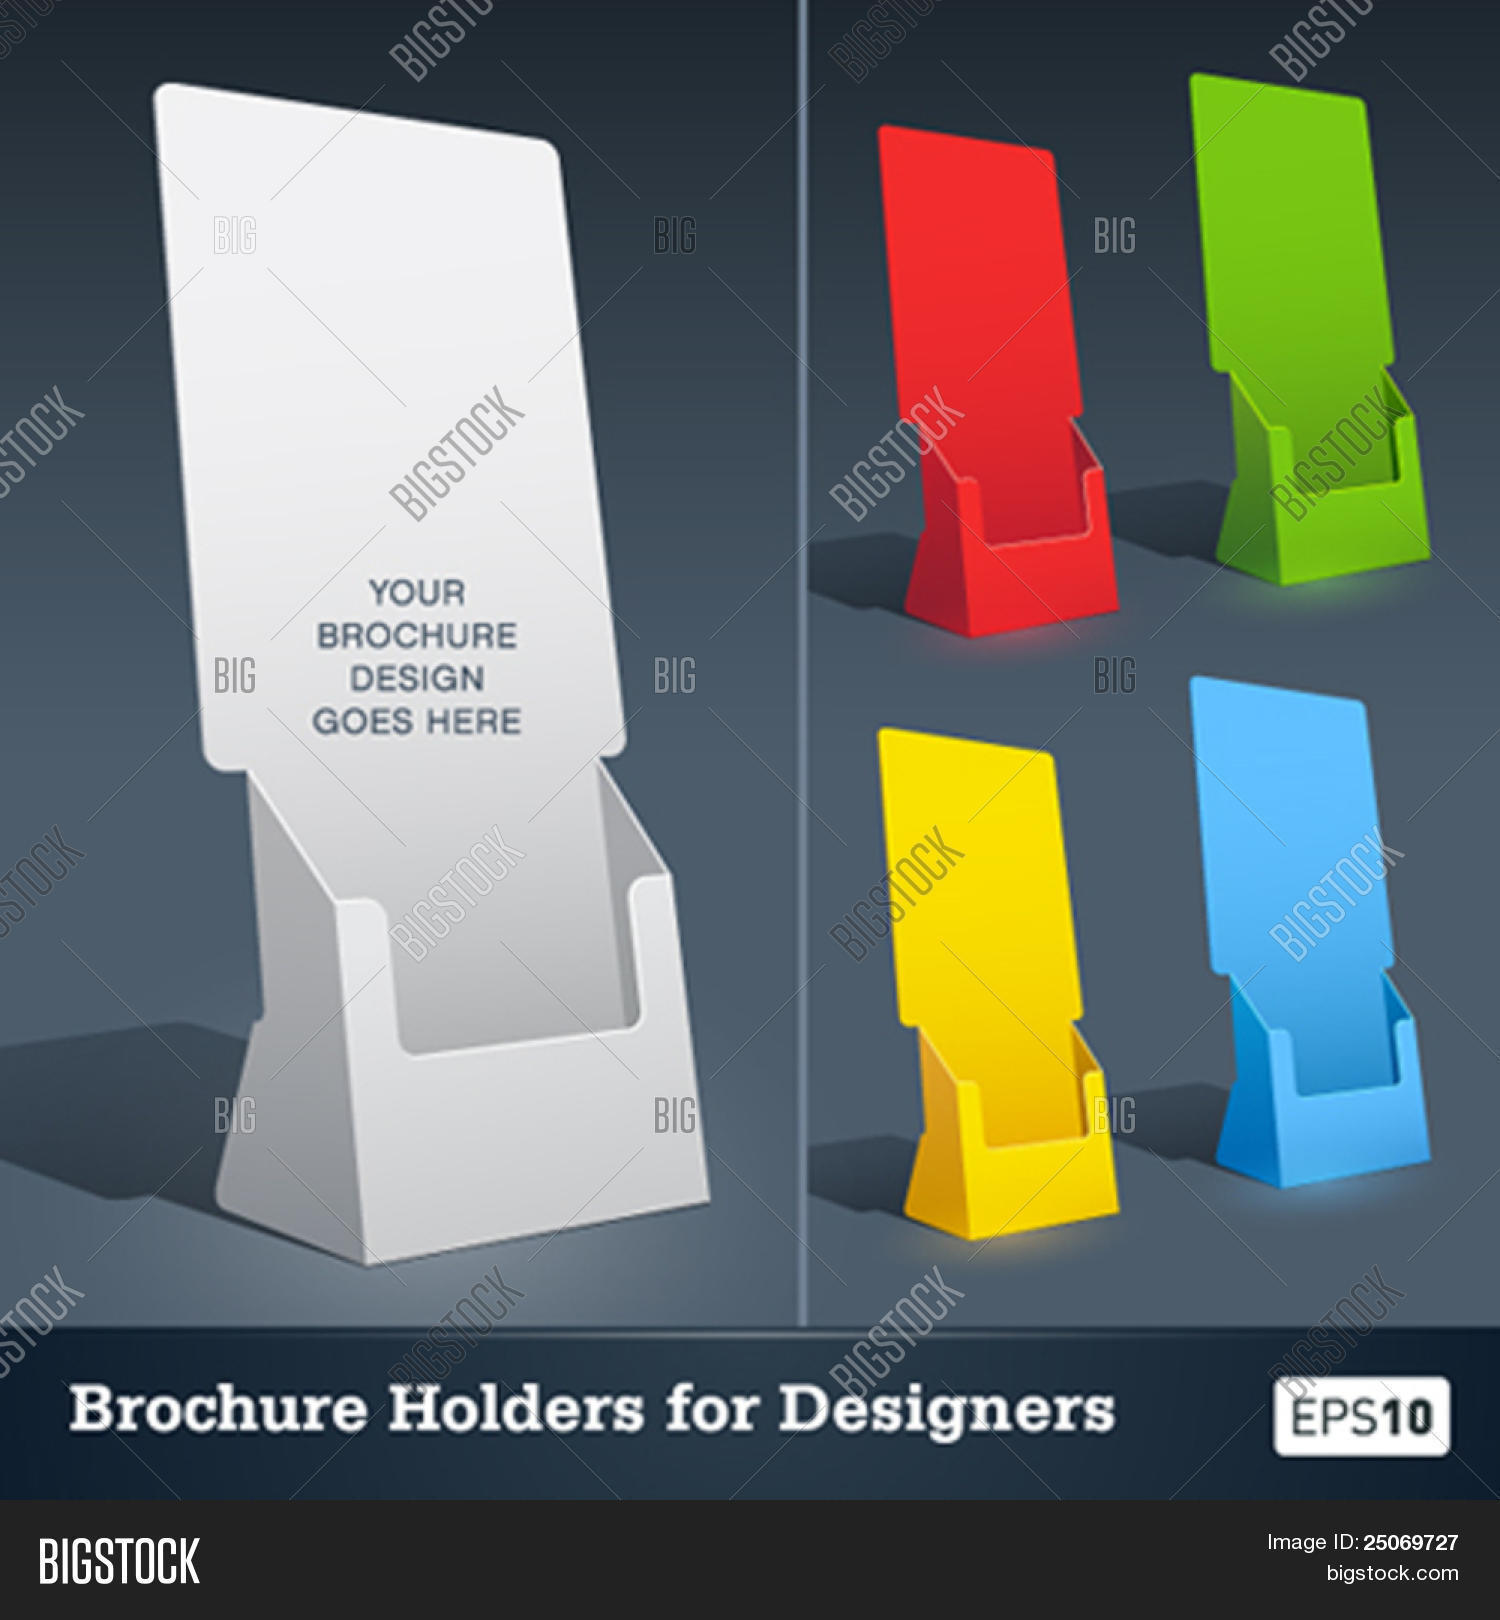 blank brochure holder template for designers